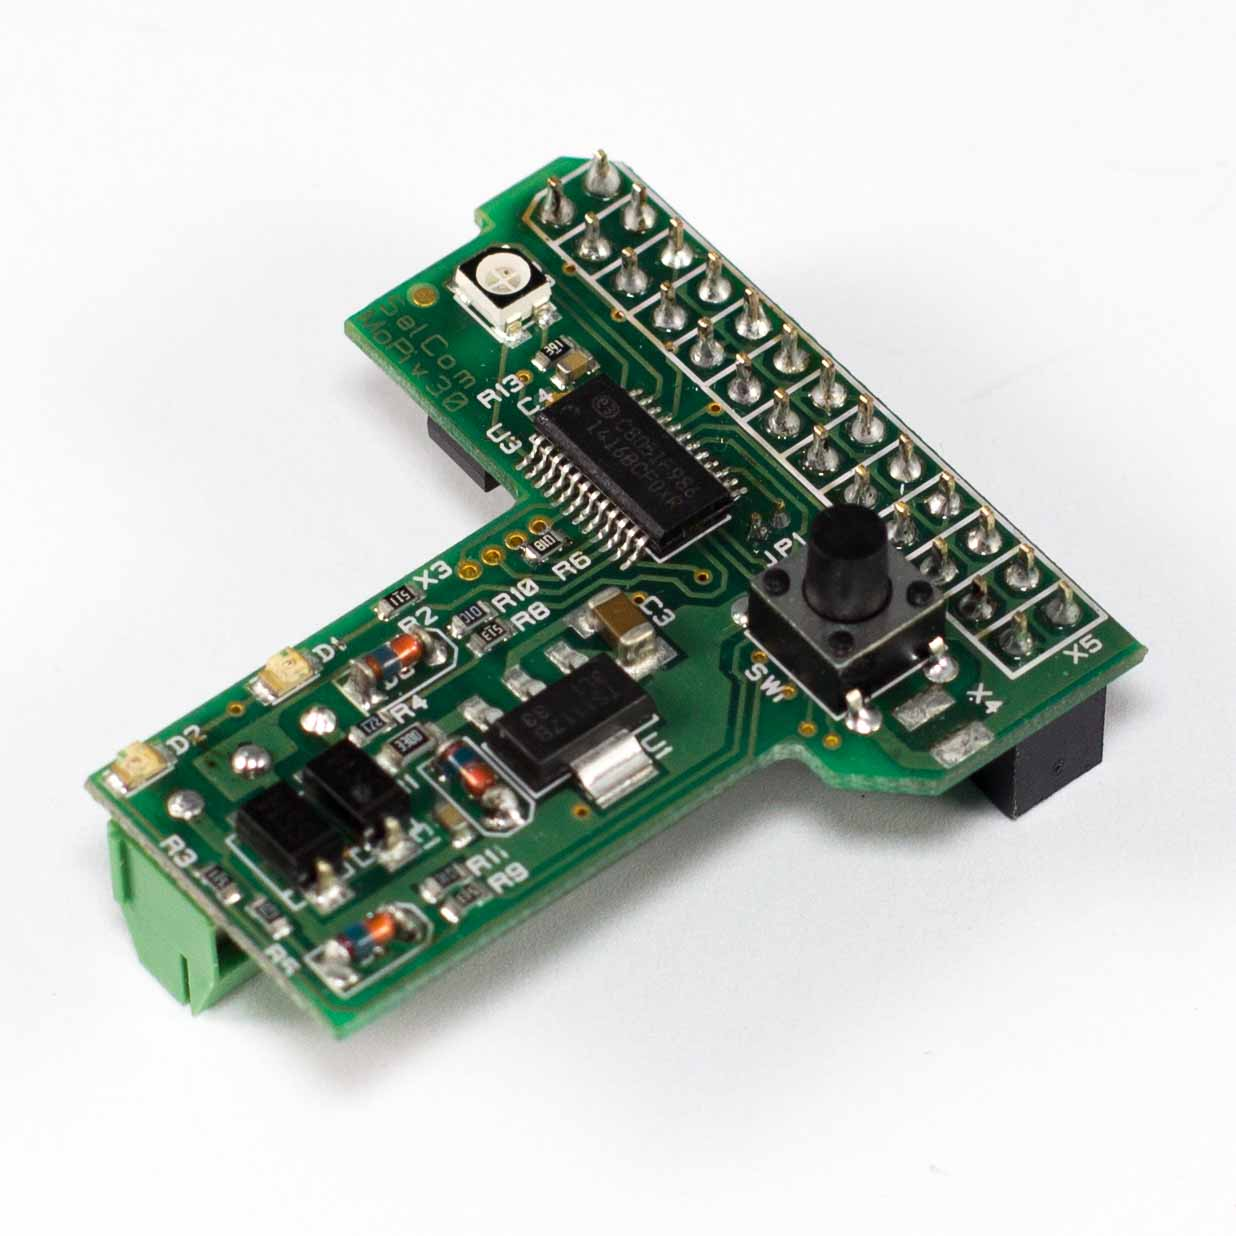 Mopi Hot Swap Mobile Power For The Pi Hacking Laptop Button Strange Capacitor Effect Electrical Product Pic